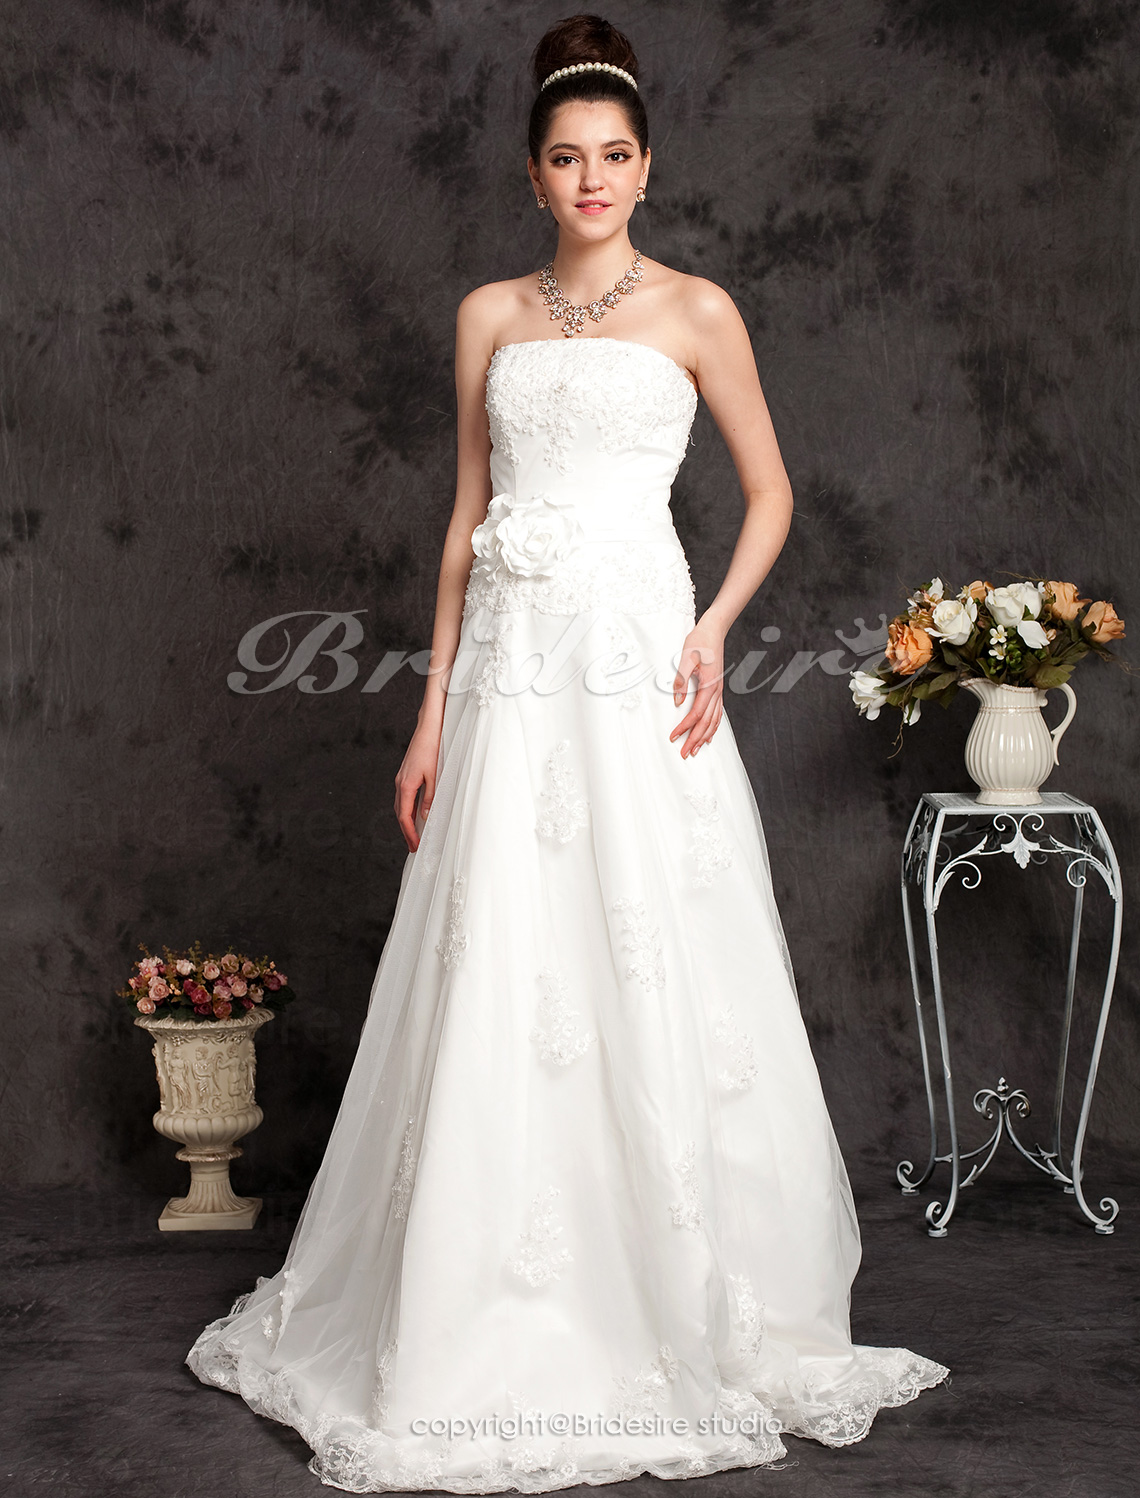 A-line Satin Sleeveless Court Train Strapless Wedding Dress